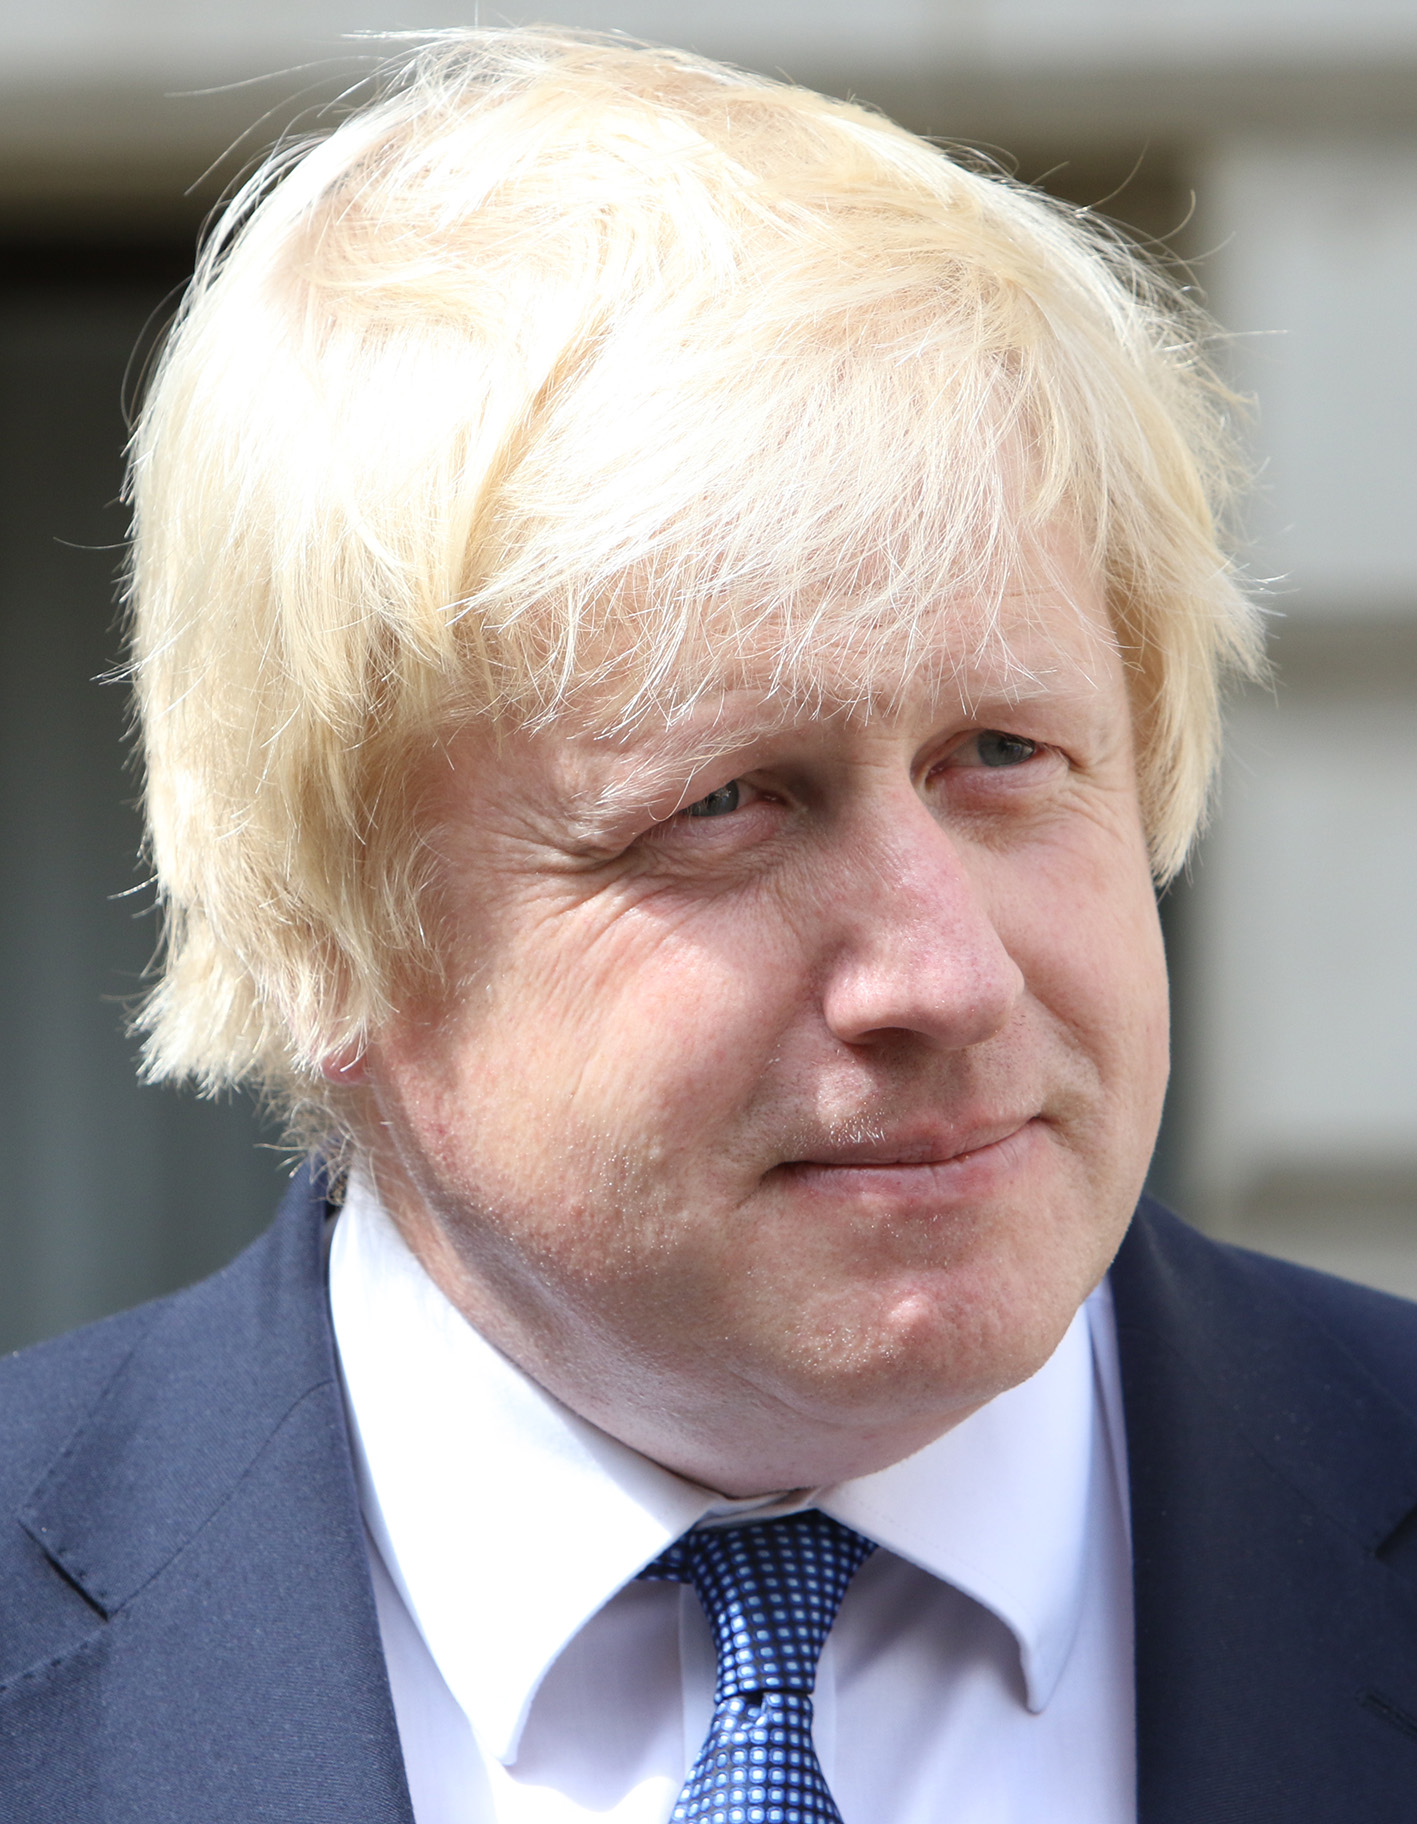 boris johnson - photo #14